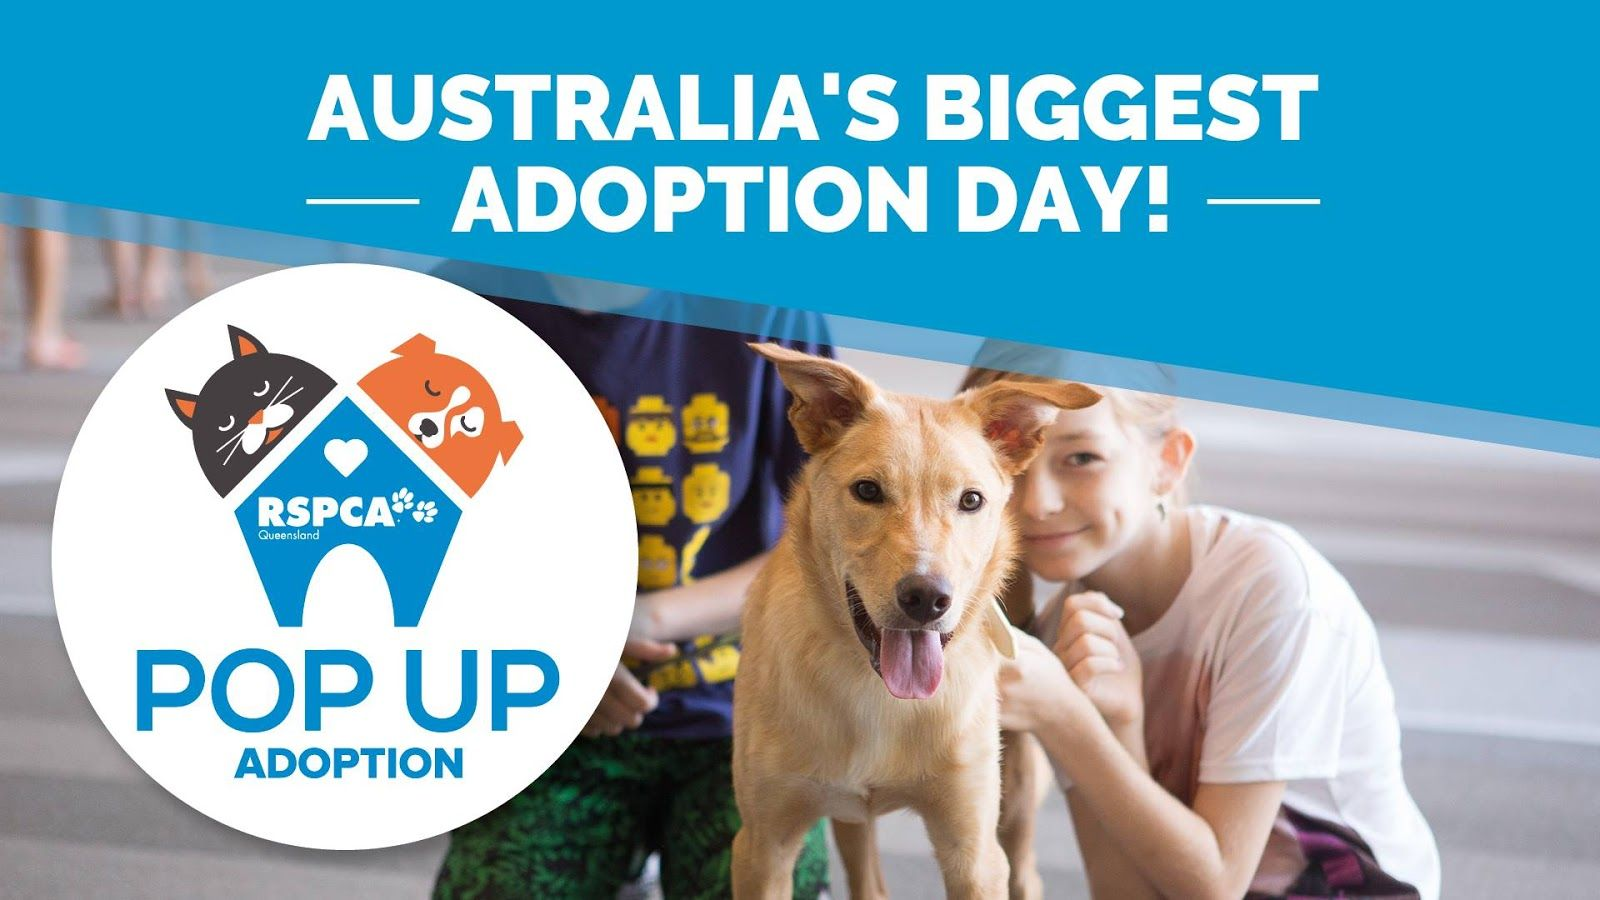 RSPCA Queensland PopUp Adoption 2018 January 13